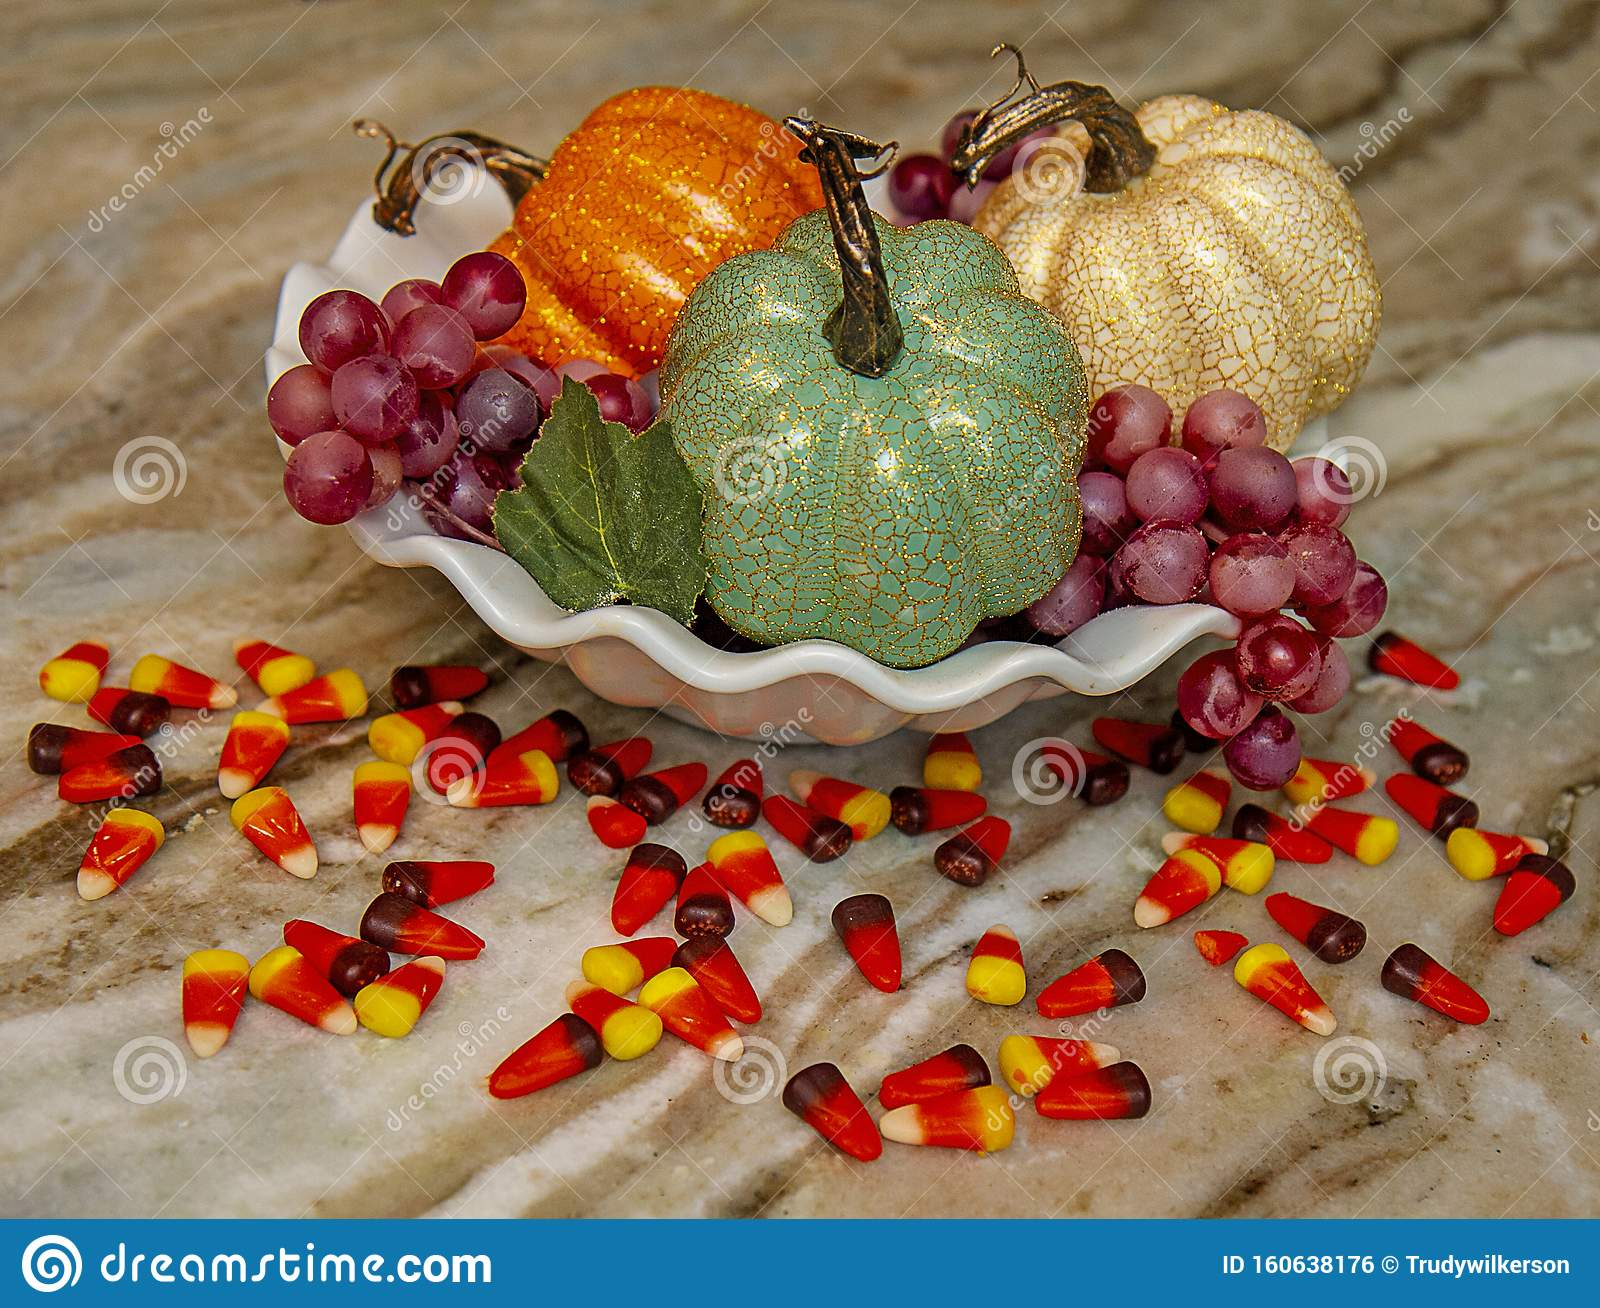 Closeup Of Kitchen Counter With Three Faux Decorative Pumpkins Grapes And Candy Corn Scattered Around Base Stock Photo Image Decorations 160638176